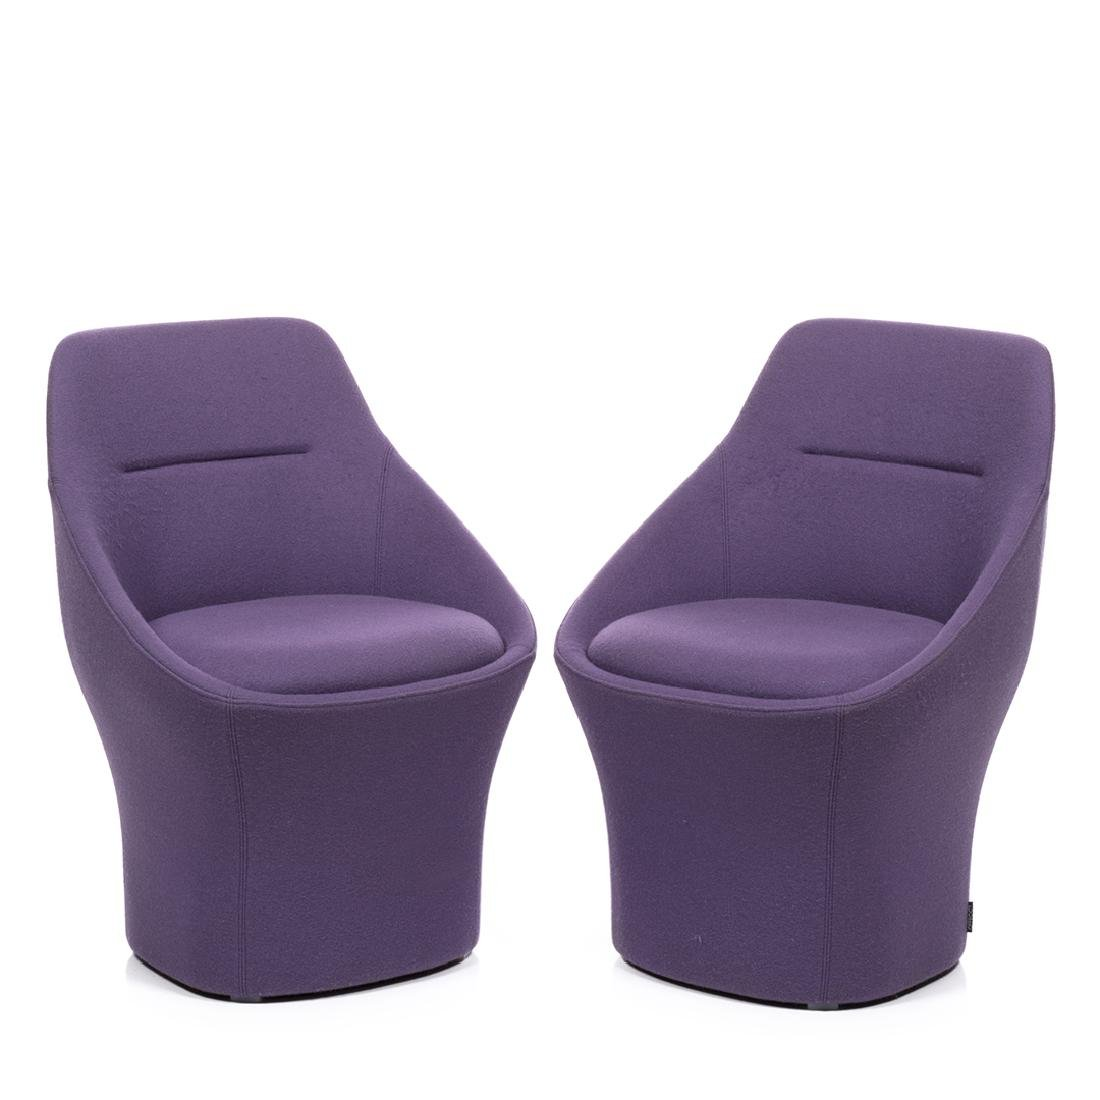 Christophe Pillet Ezy Chairs (2)